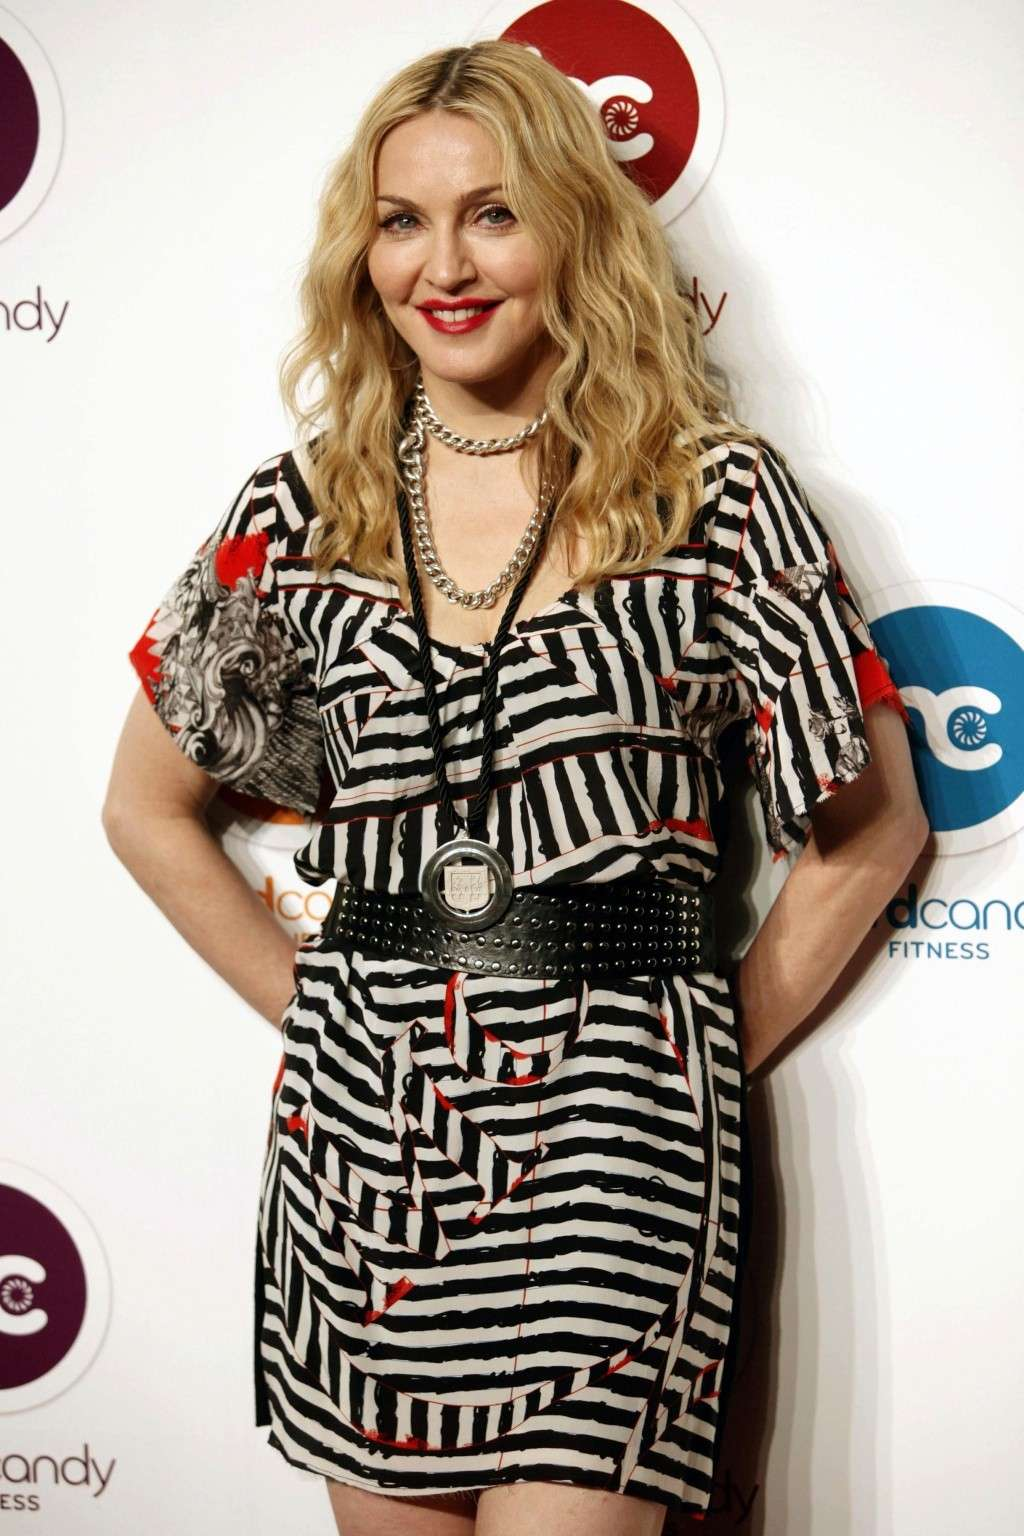 Nov 29, 2010 - Madonna - At the opening of the first Hard Candy Fitness Center in Mexico Forum_66